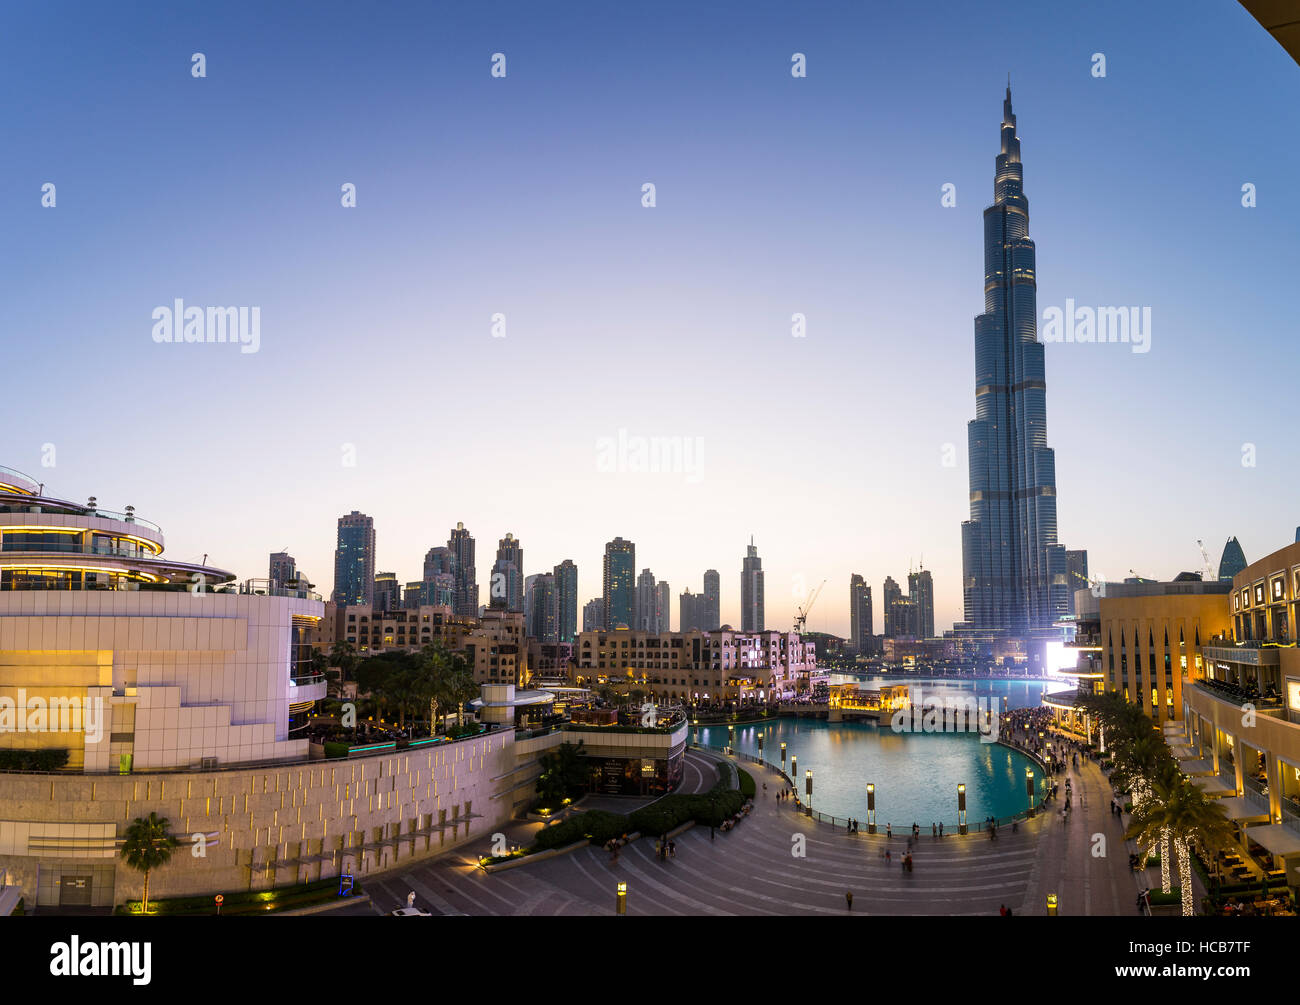 Burj Khalifa, Downtown, Dubai, United Arab Emirates - Stock Image